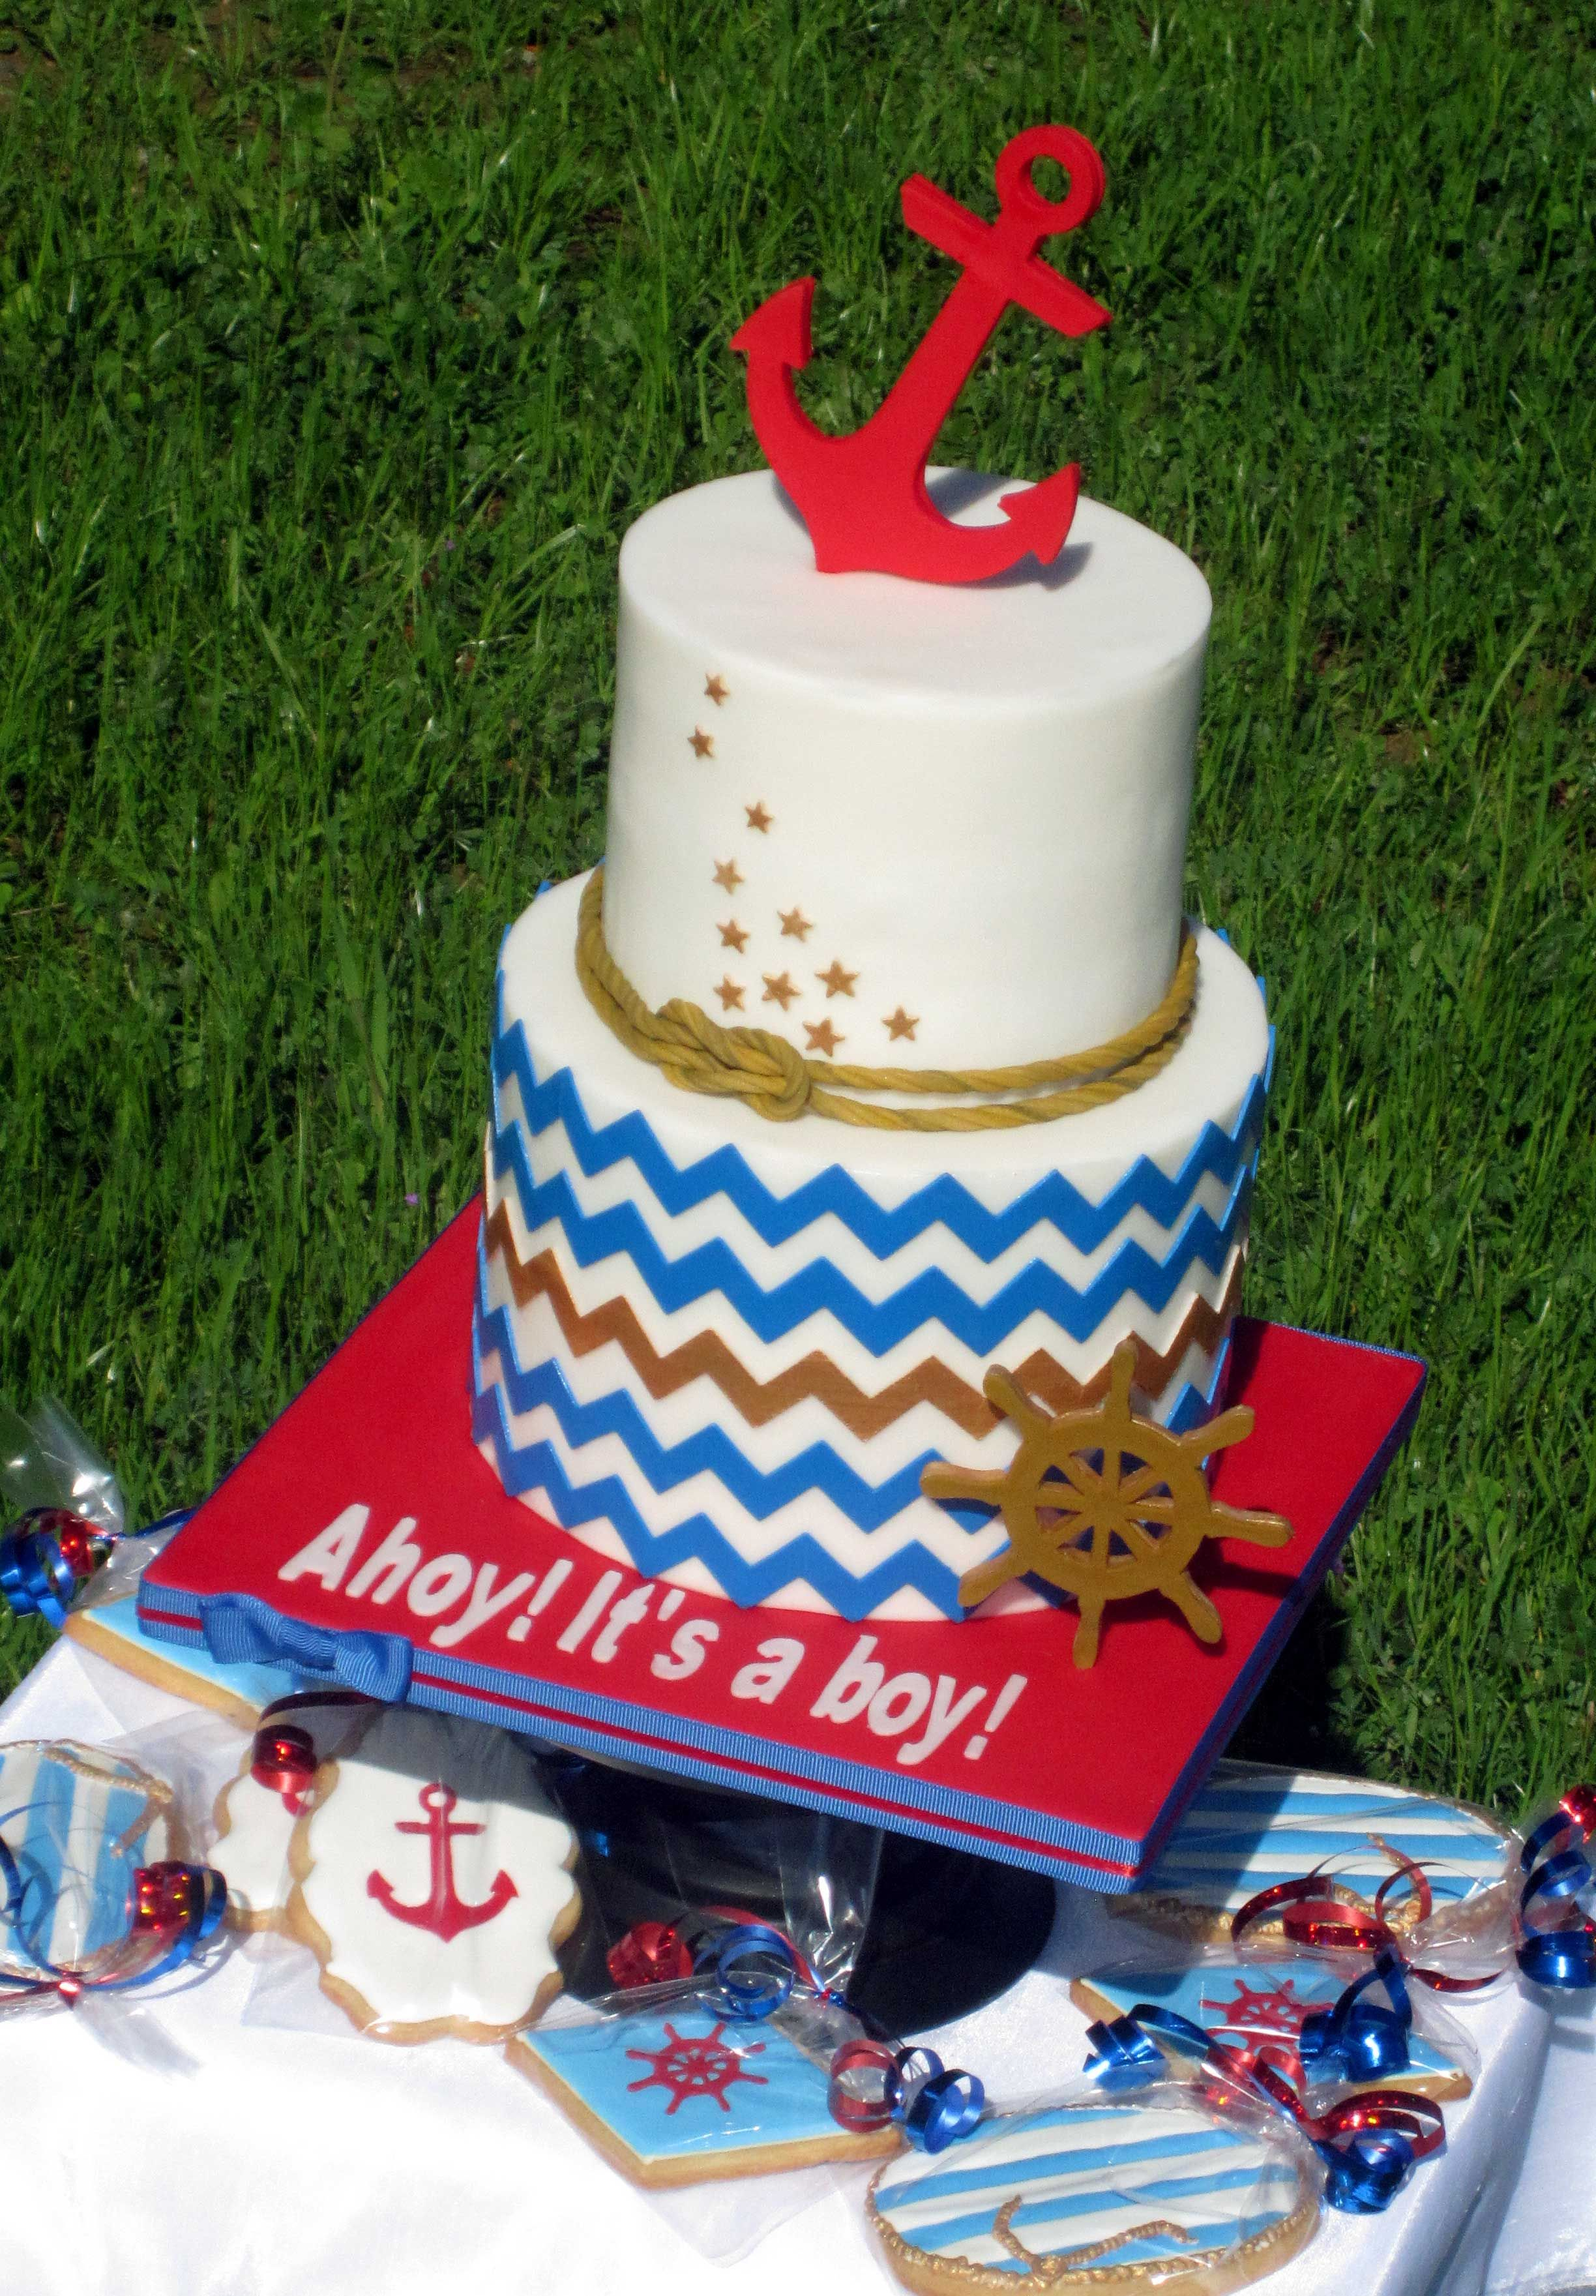 Ahoy! Its a boy! - This cake would be very difficult and time consuming if not for pattern cutting machine. I use Cricut Cake and it makes all pattern cuttings with an ease and total precision. The anchor, the wheel, the chevron patterns, letters and stars, all cut using it! Cookies, however, were all hand piped, with nothing else but sugar and love !